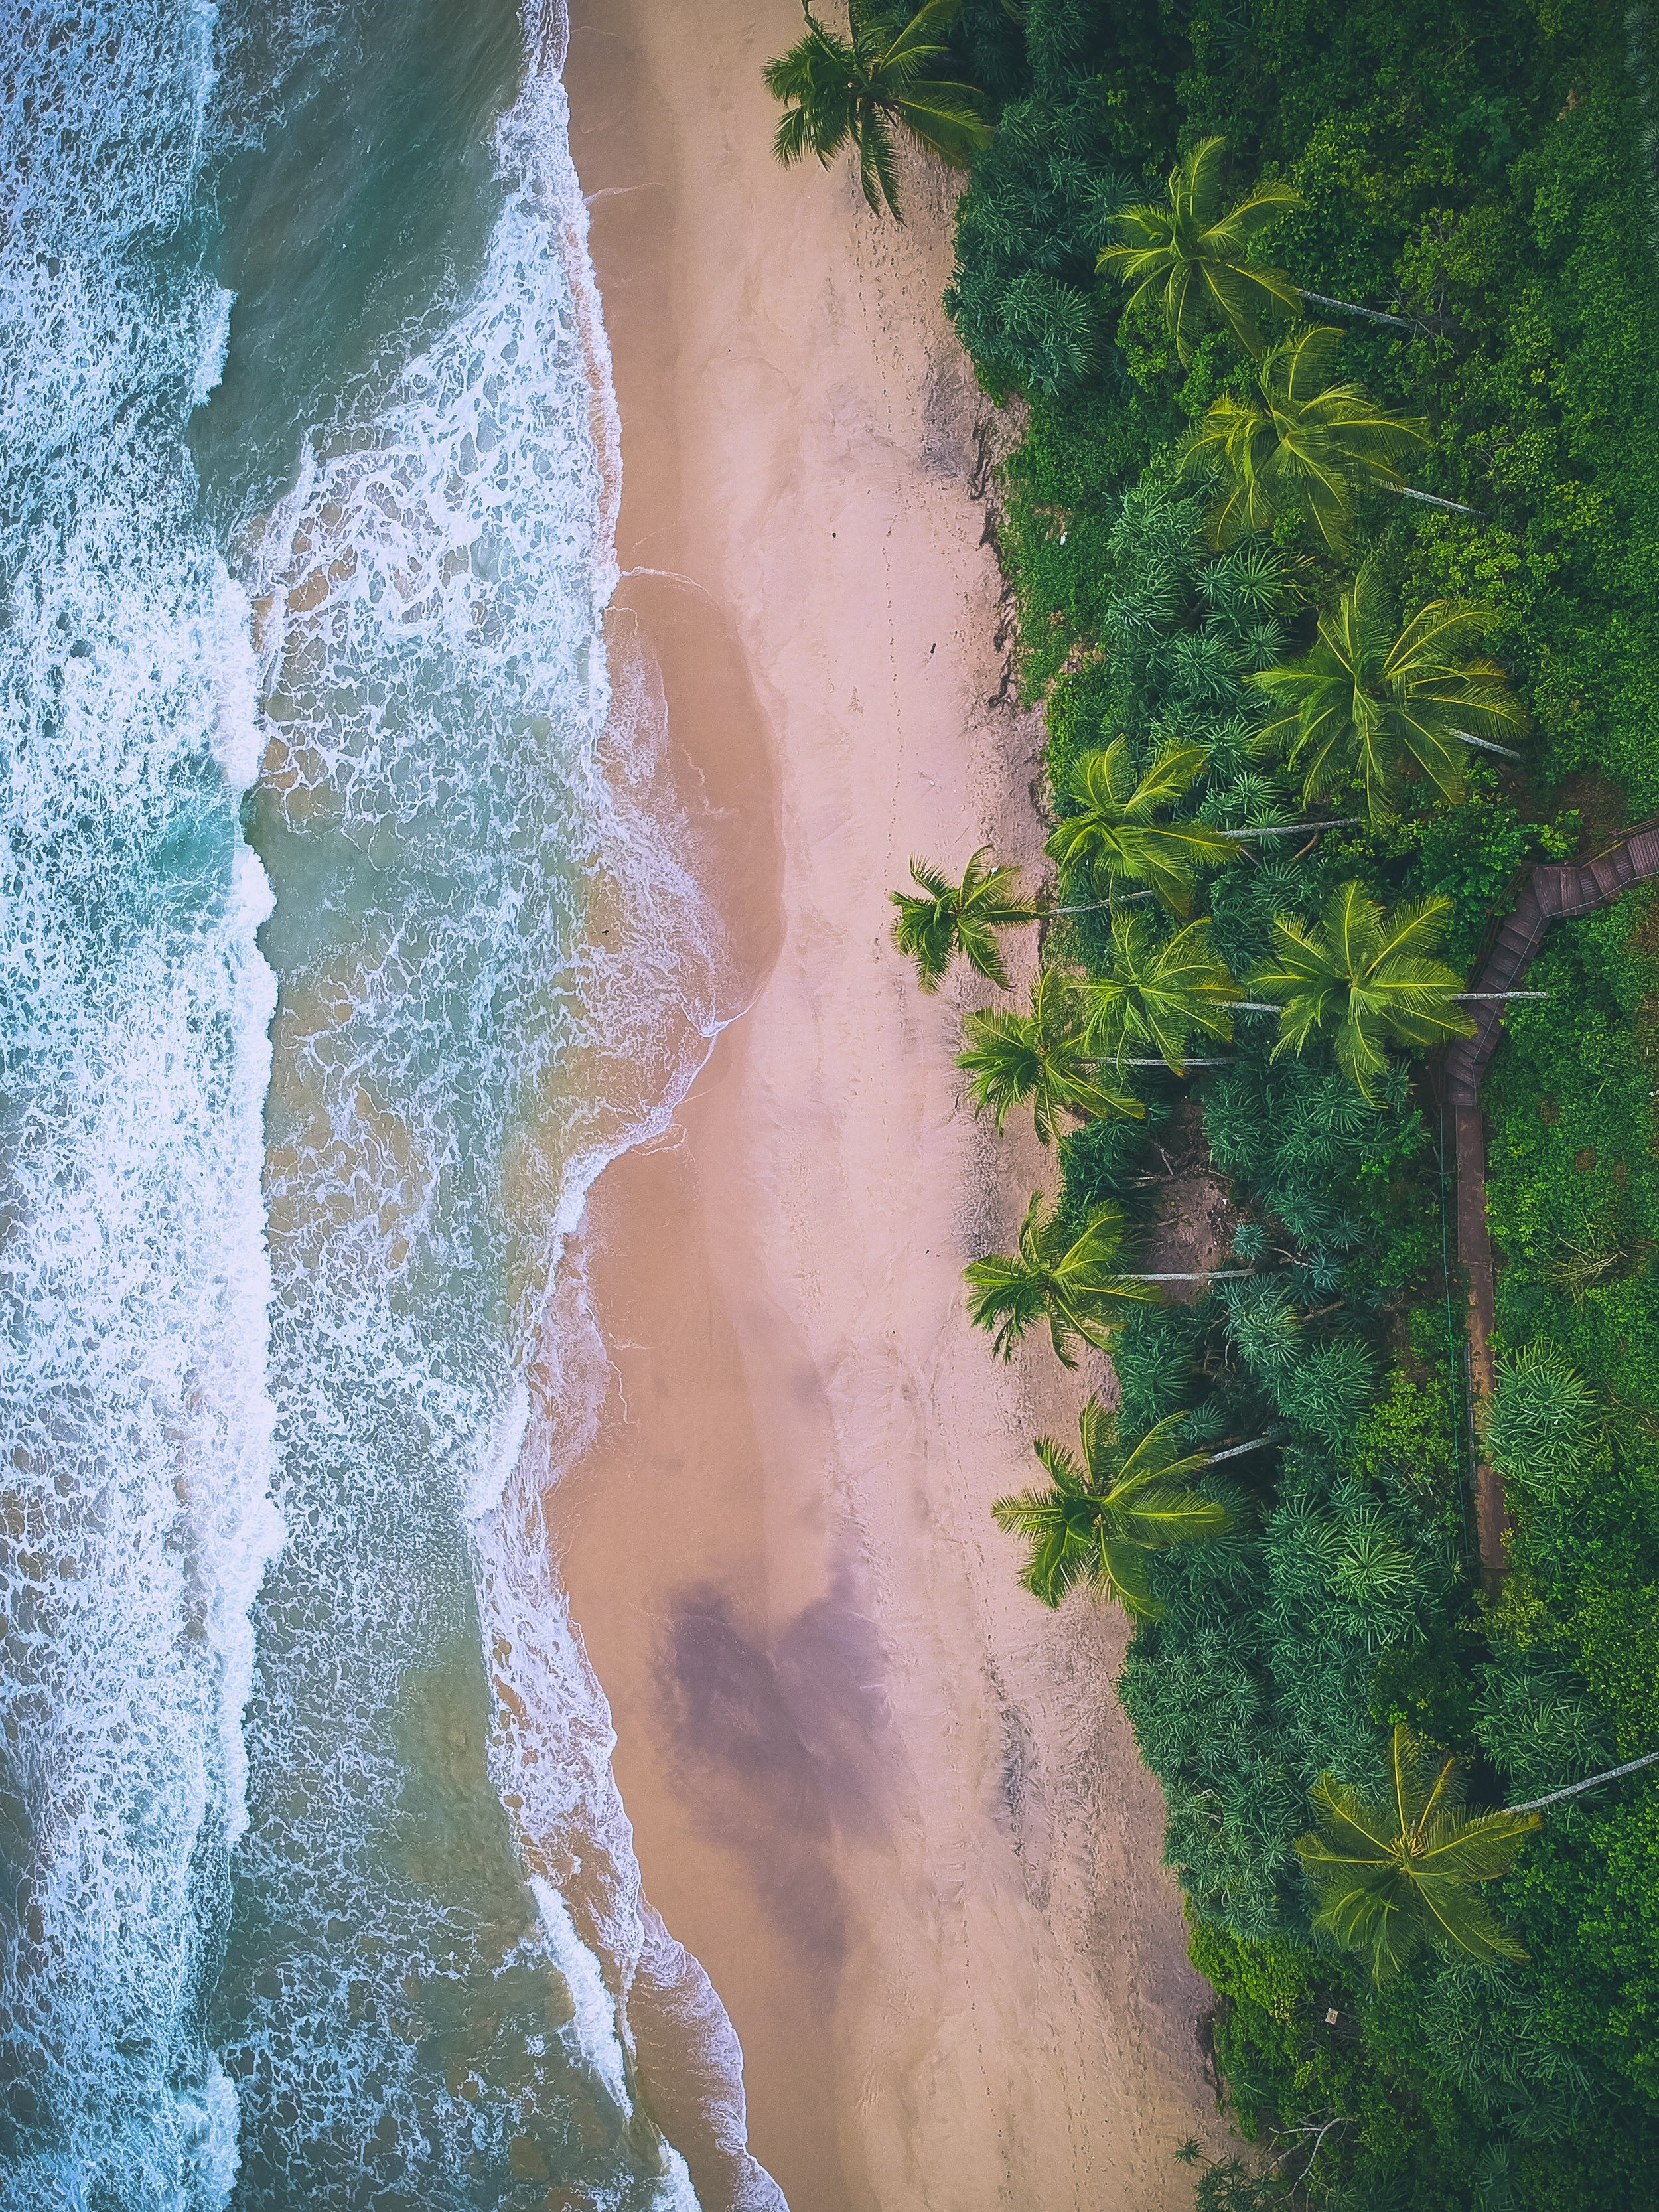 One of the beaches in the 'Deep South' of Sri Lanka.